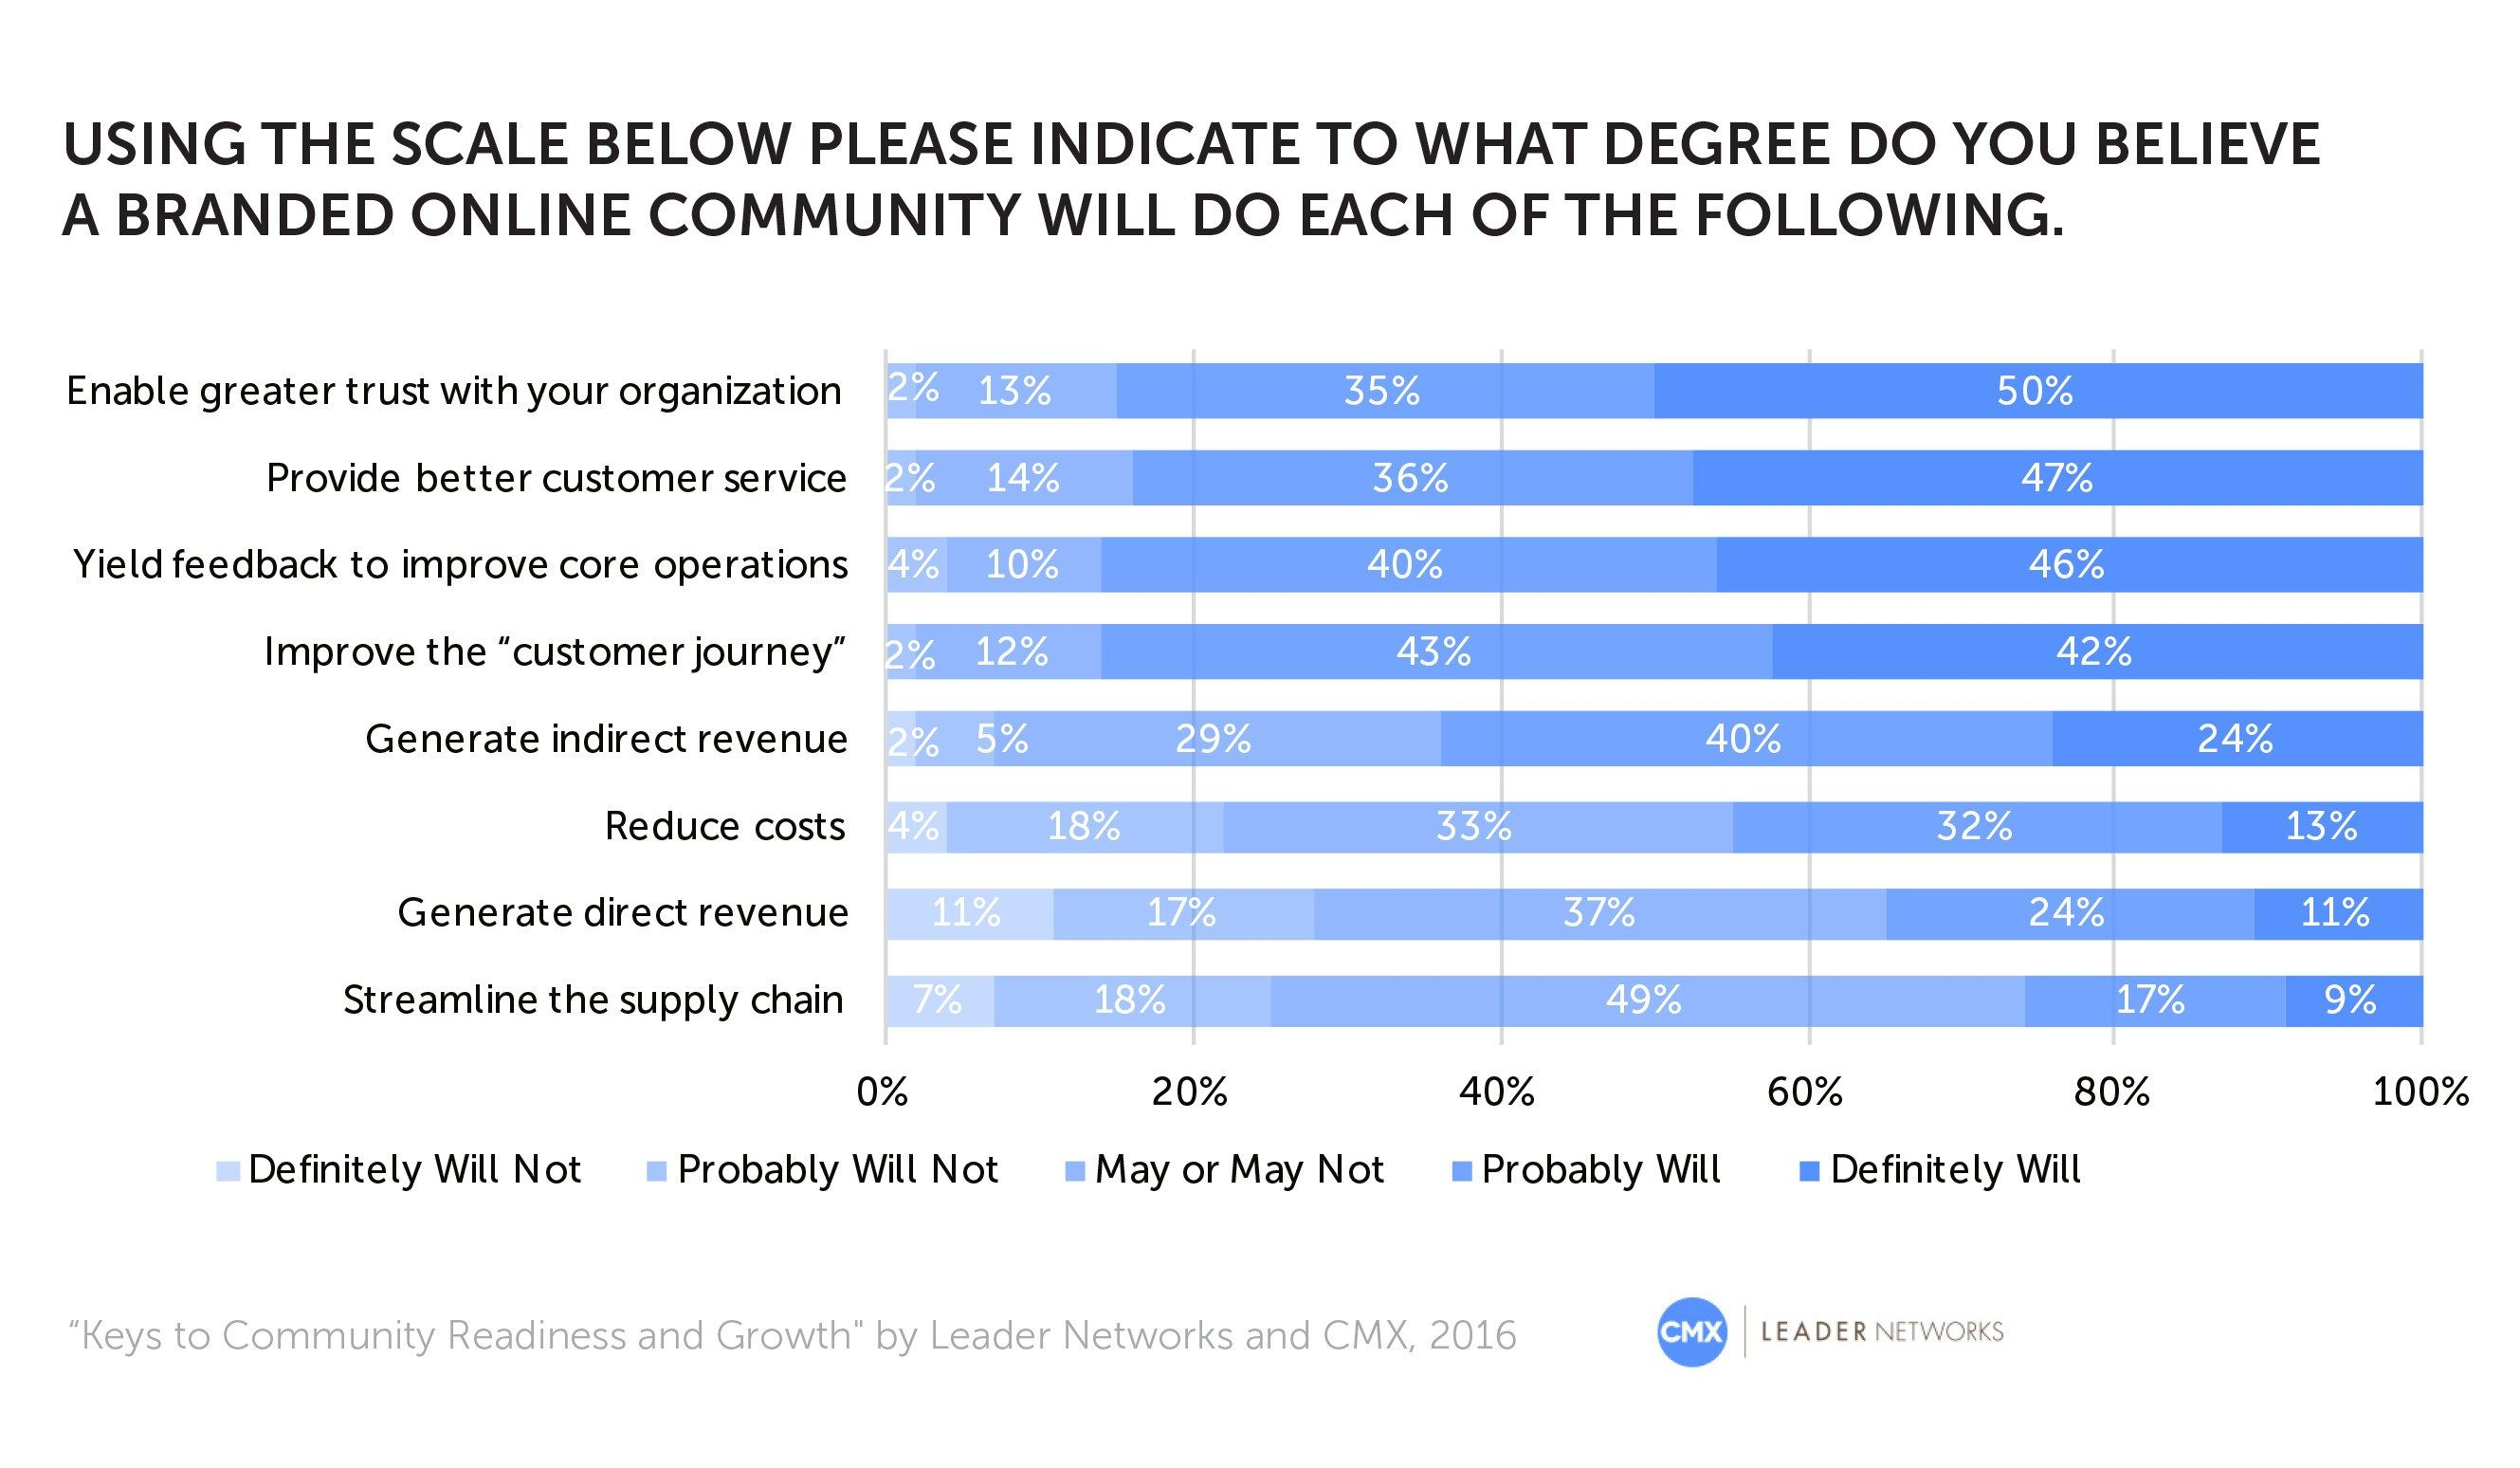 86% of brands believe that community can impact core operations.